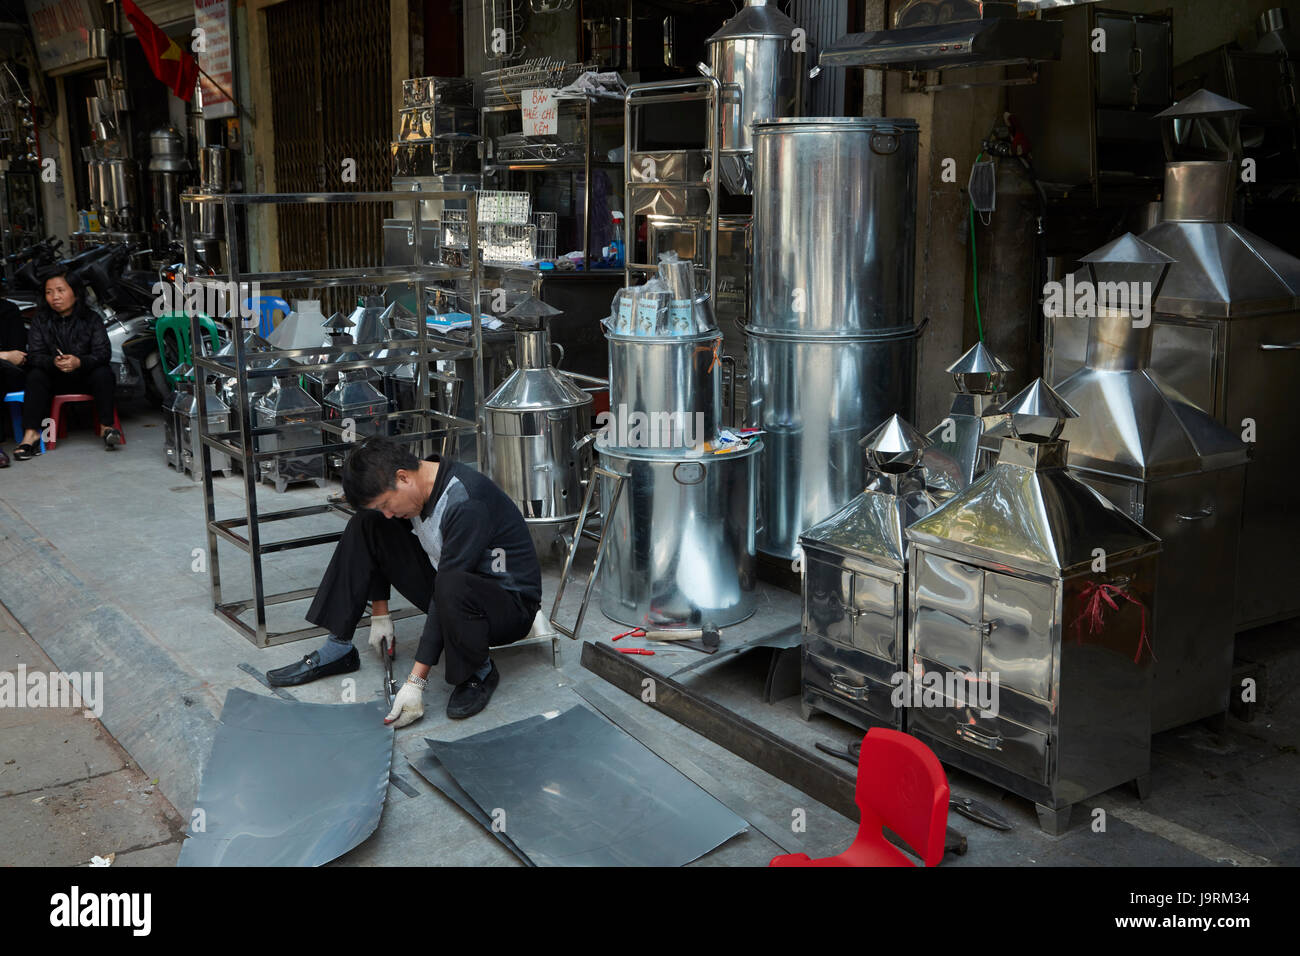 Sheet metal worker at metalwork shop, Metal Street, Old Quarter, Hanoi, Vietnam - Stock Image